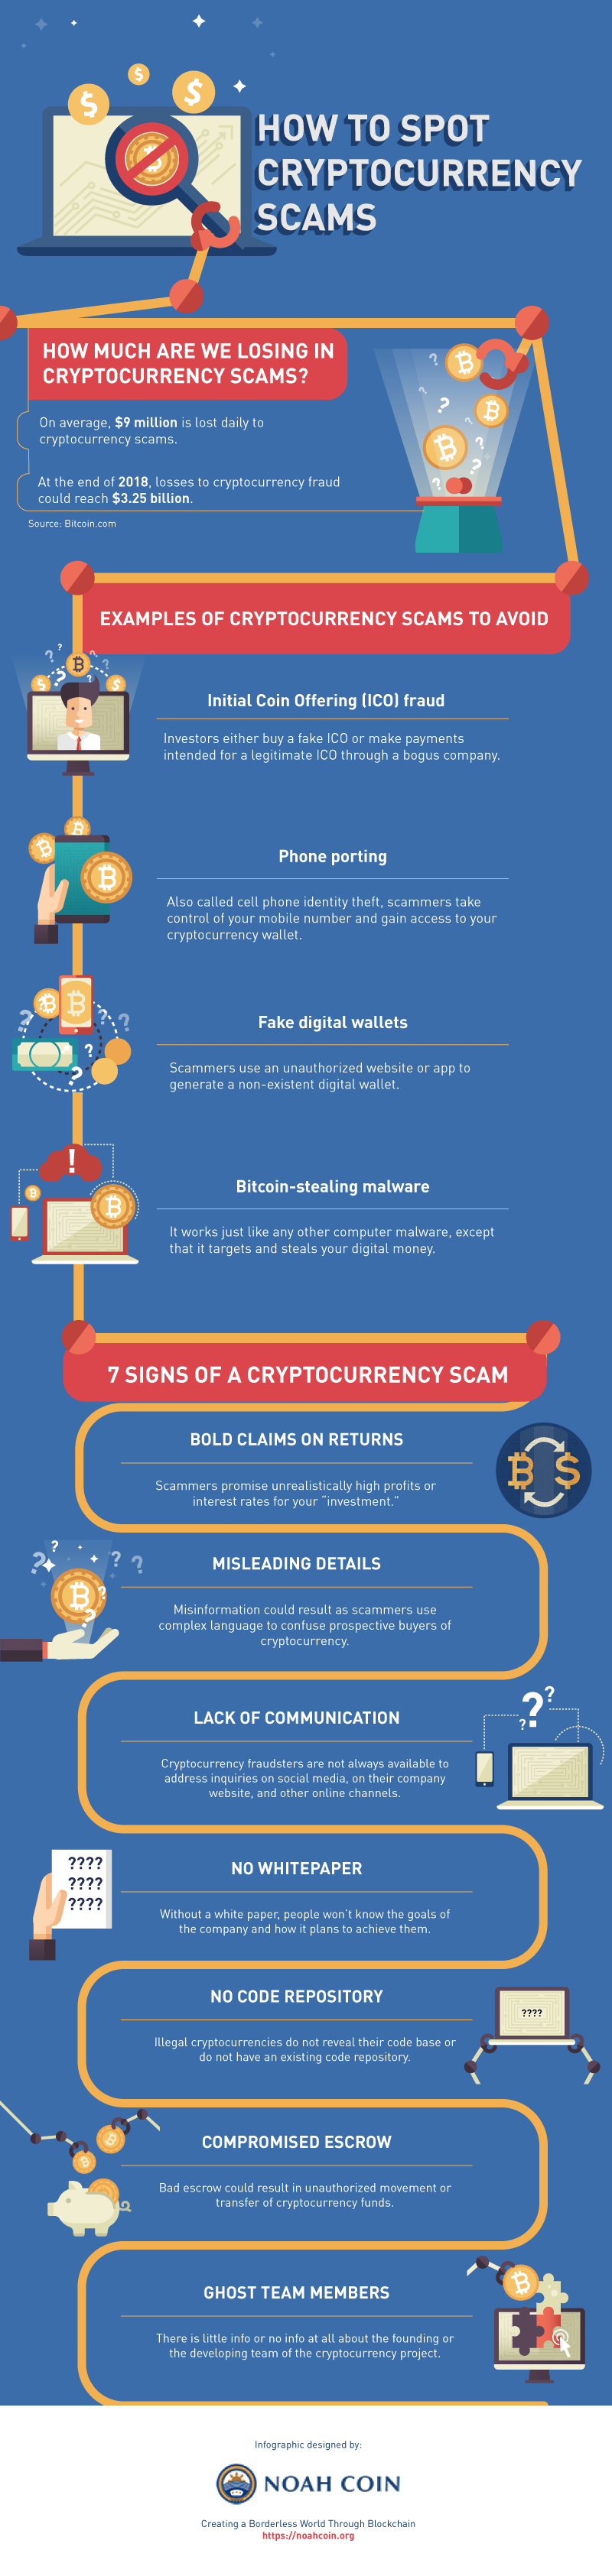 How to spot cryptocurrency scams #infographic #Cryptocurrency #infographics #cryptocurrency scams #Scams #Bitcoin